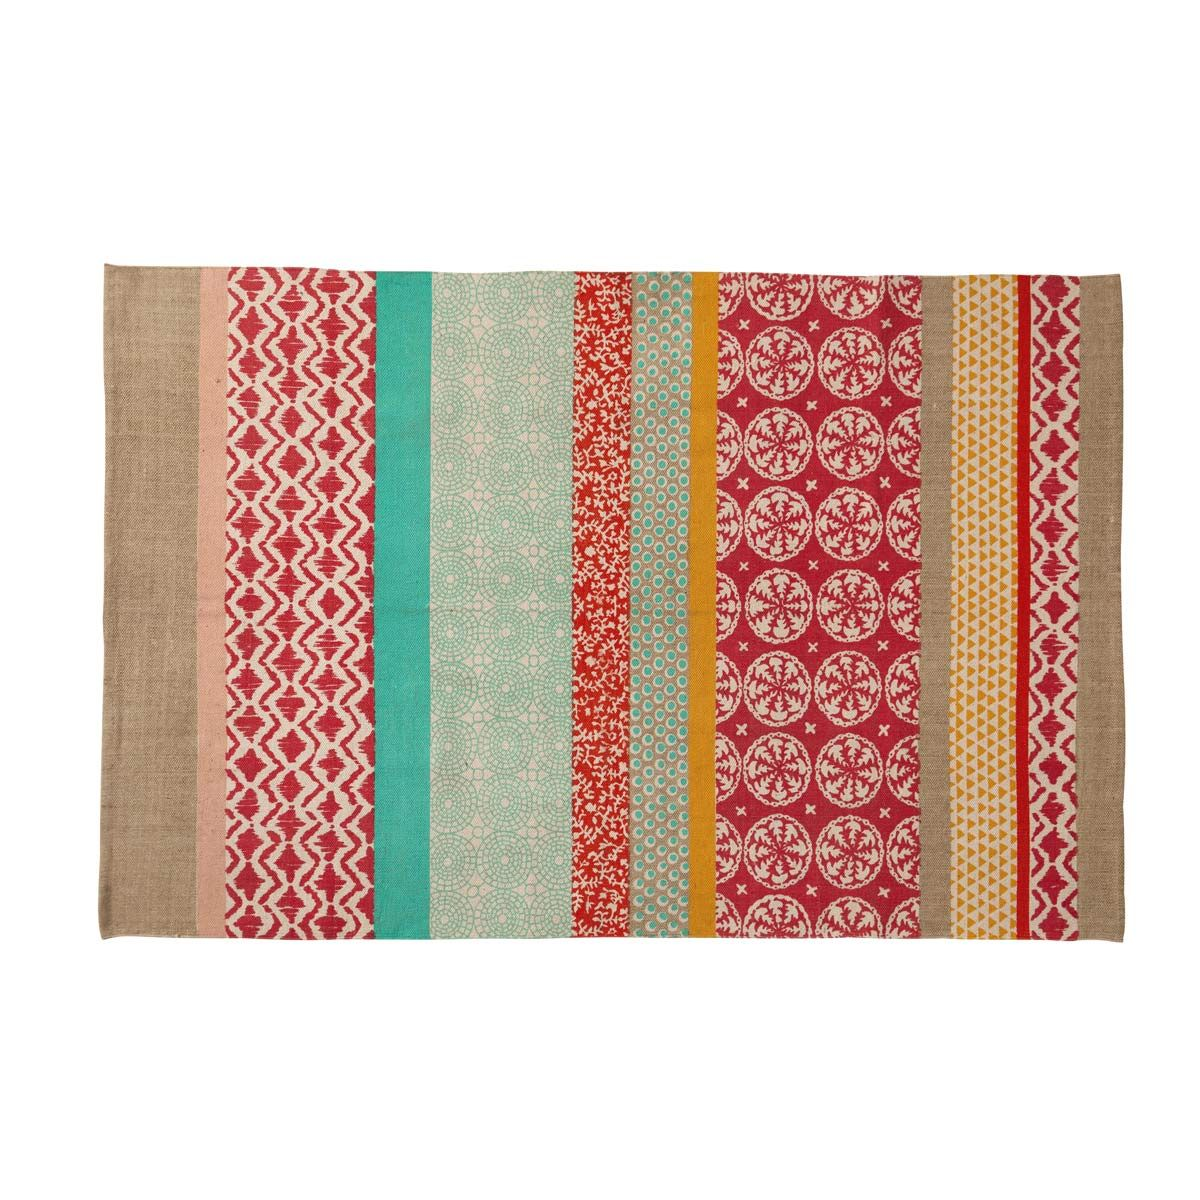 Cotton Rug With Multicoloured Patterns 120x180